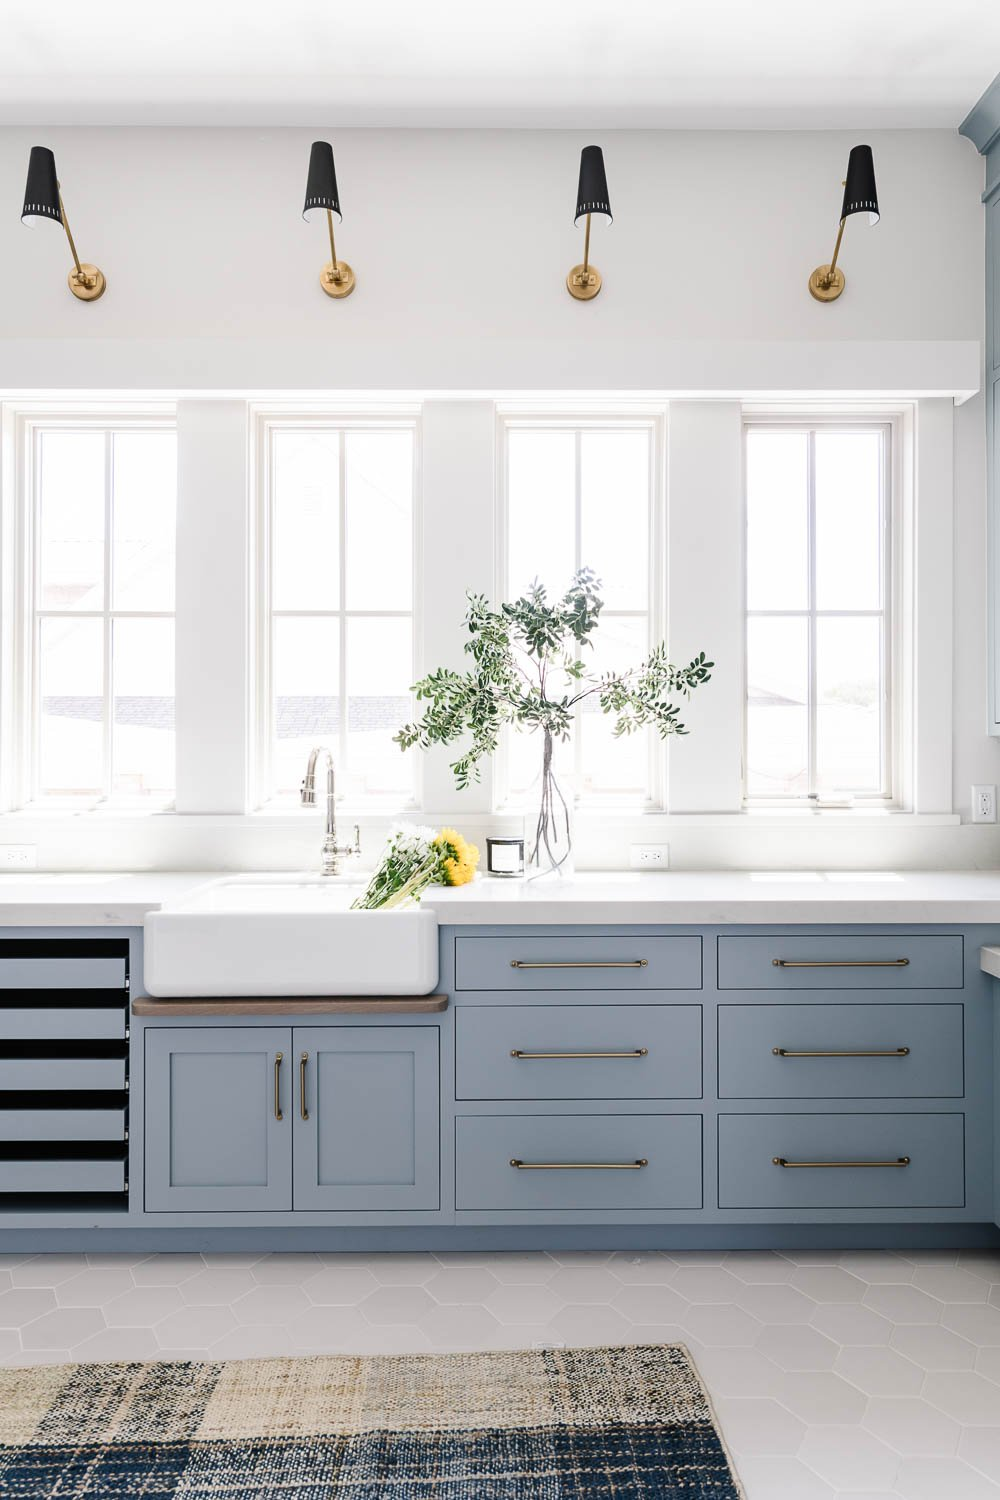 Soft blue laundry room cabinetry and storage